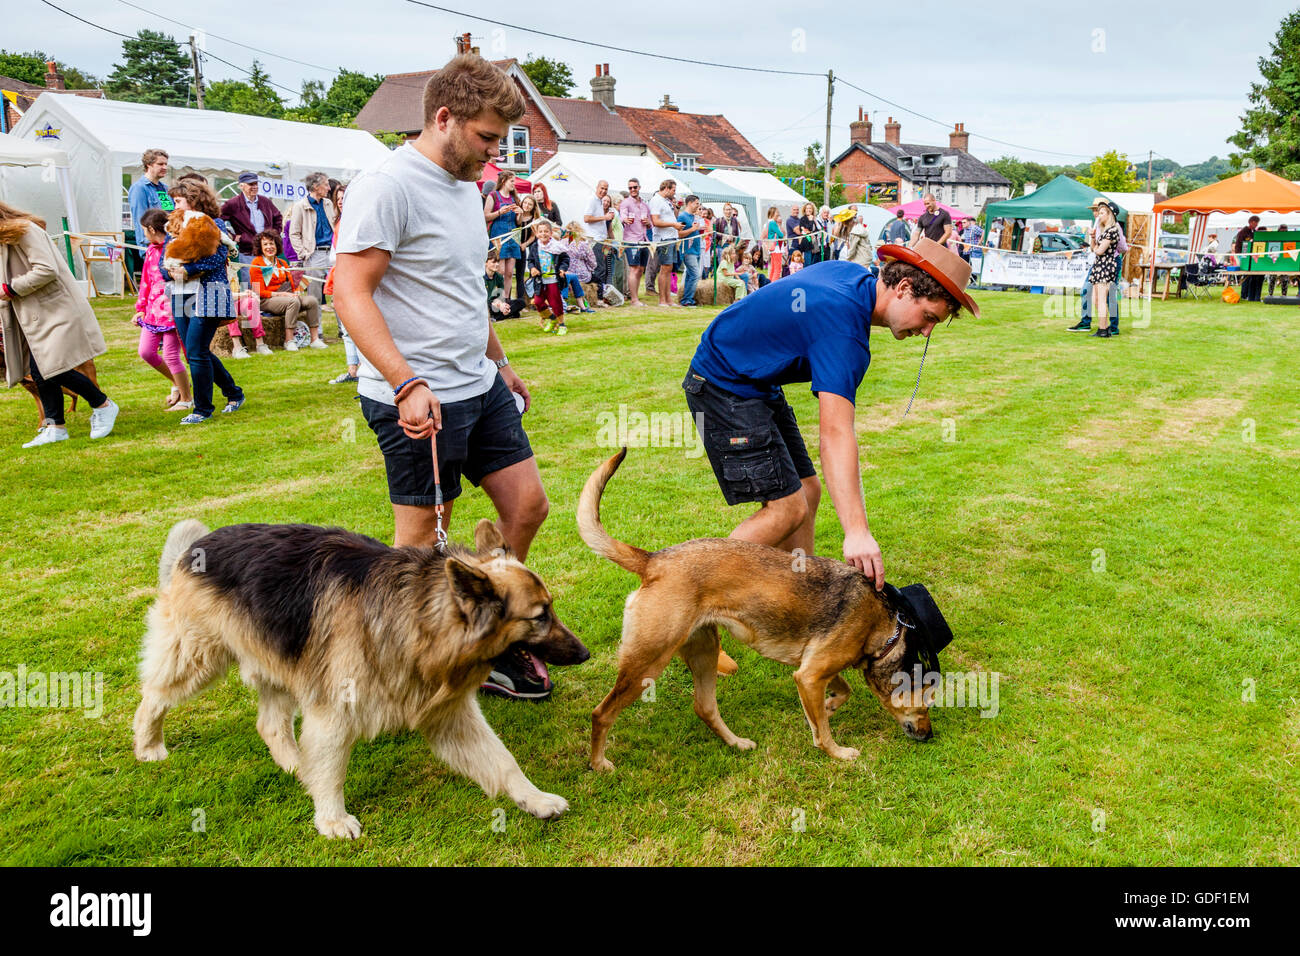 Local People and Their Pets Take Part In A Traditional Dog Show At The Fairwarp Village Fete, Fairwarp, East Sussex, - Stock Image